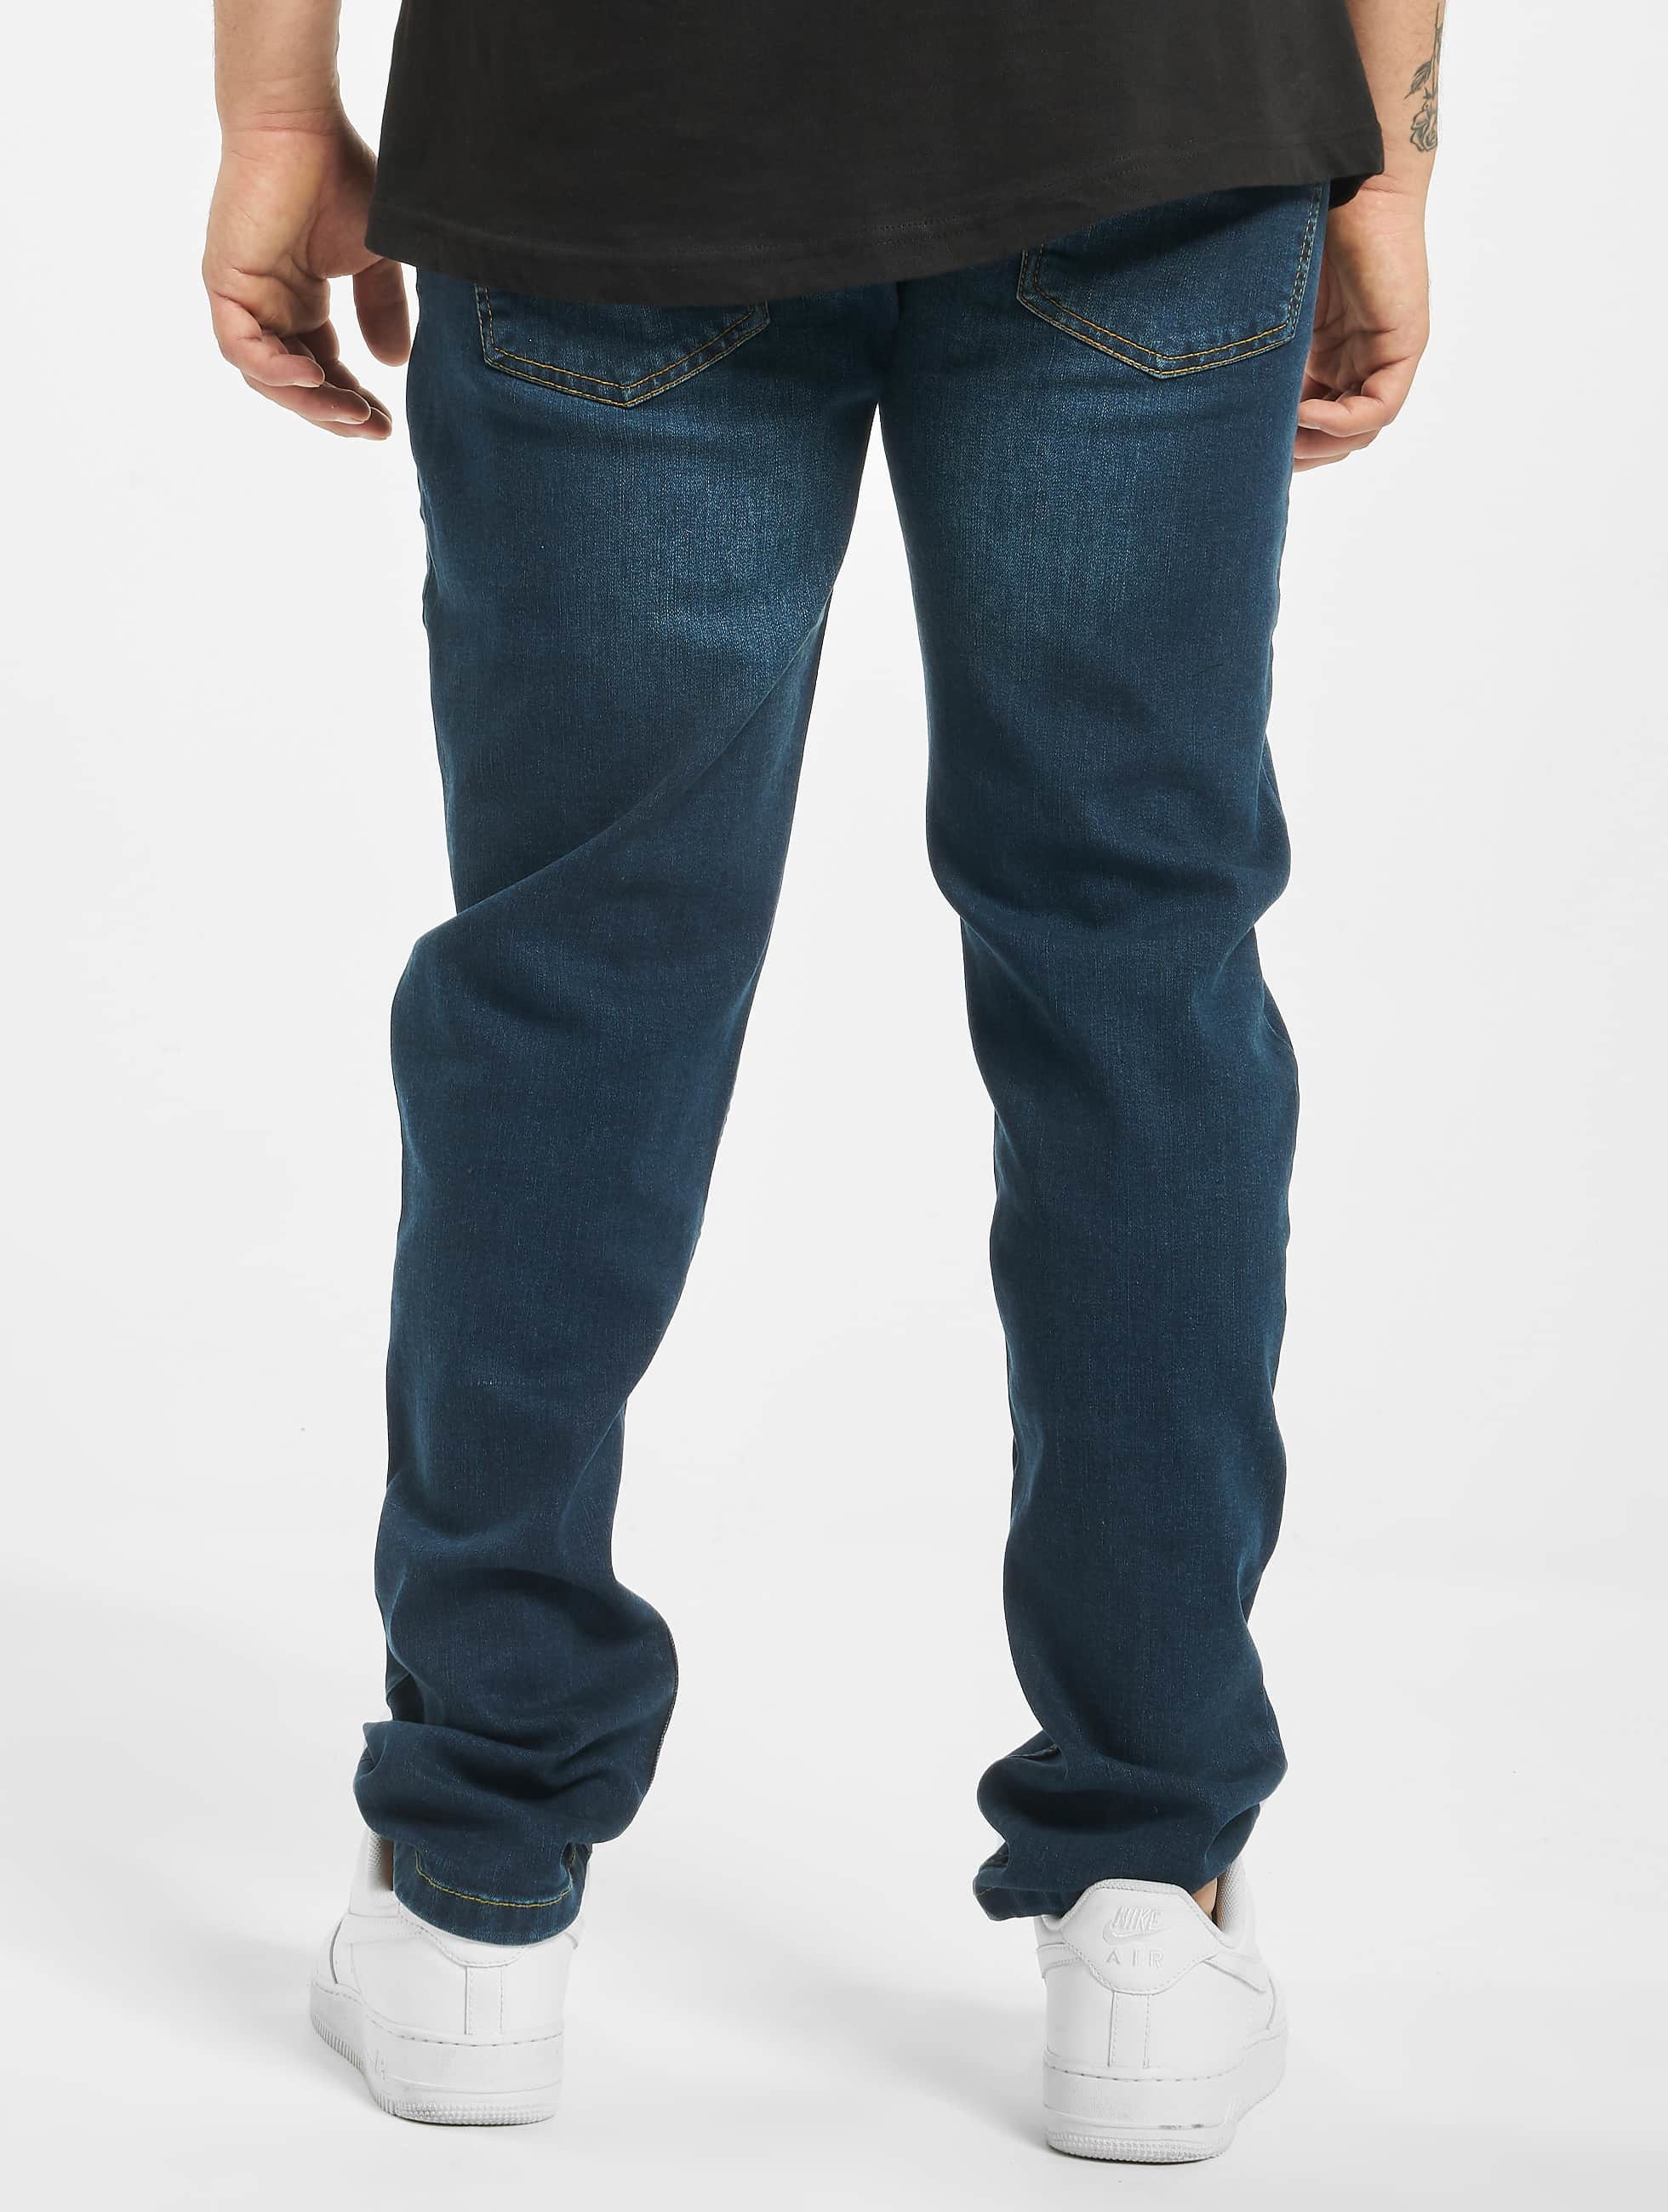 Urban Classics Dżinsy straight fit Stretch Denim niebieski